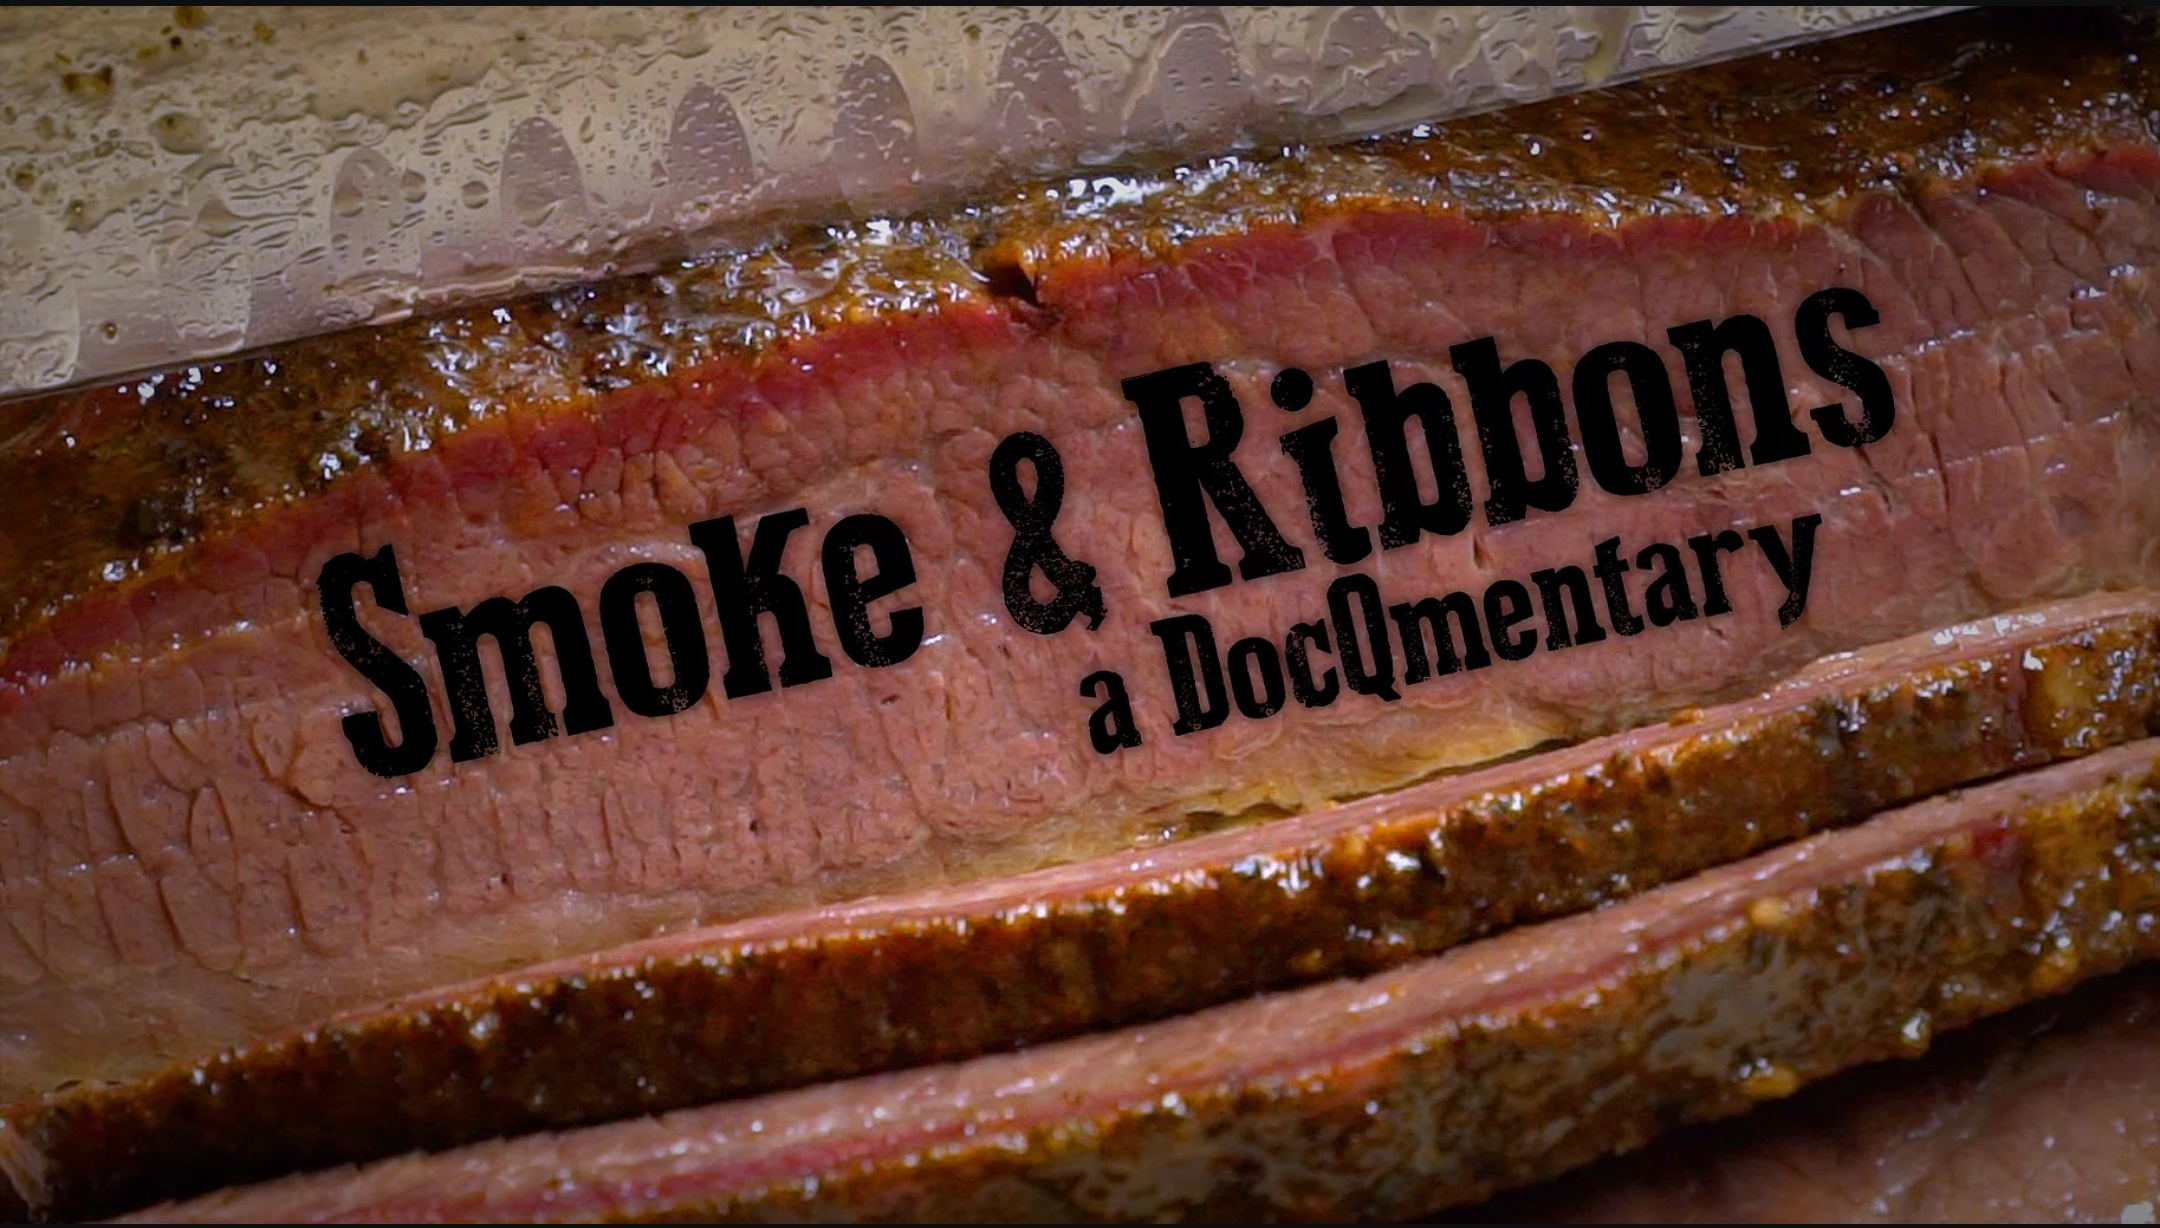 Smoke and Ribbons a DocQmentary